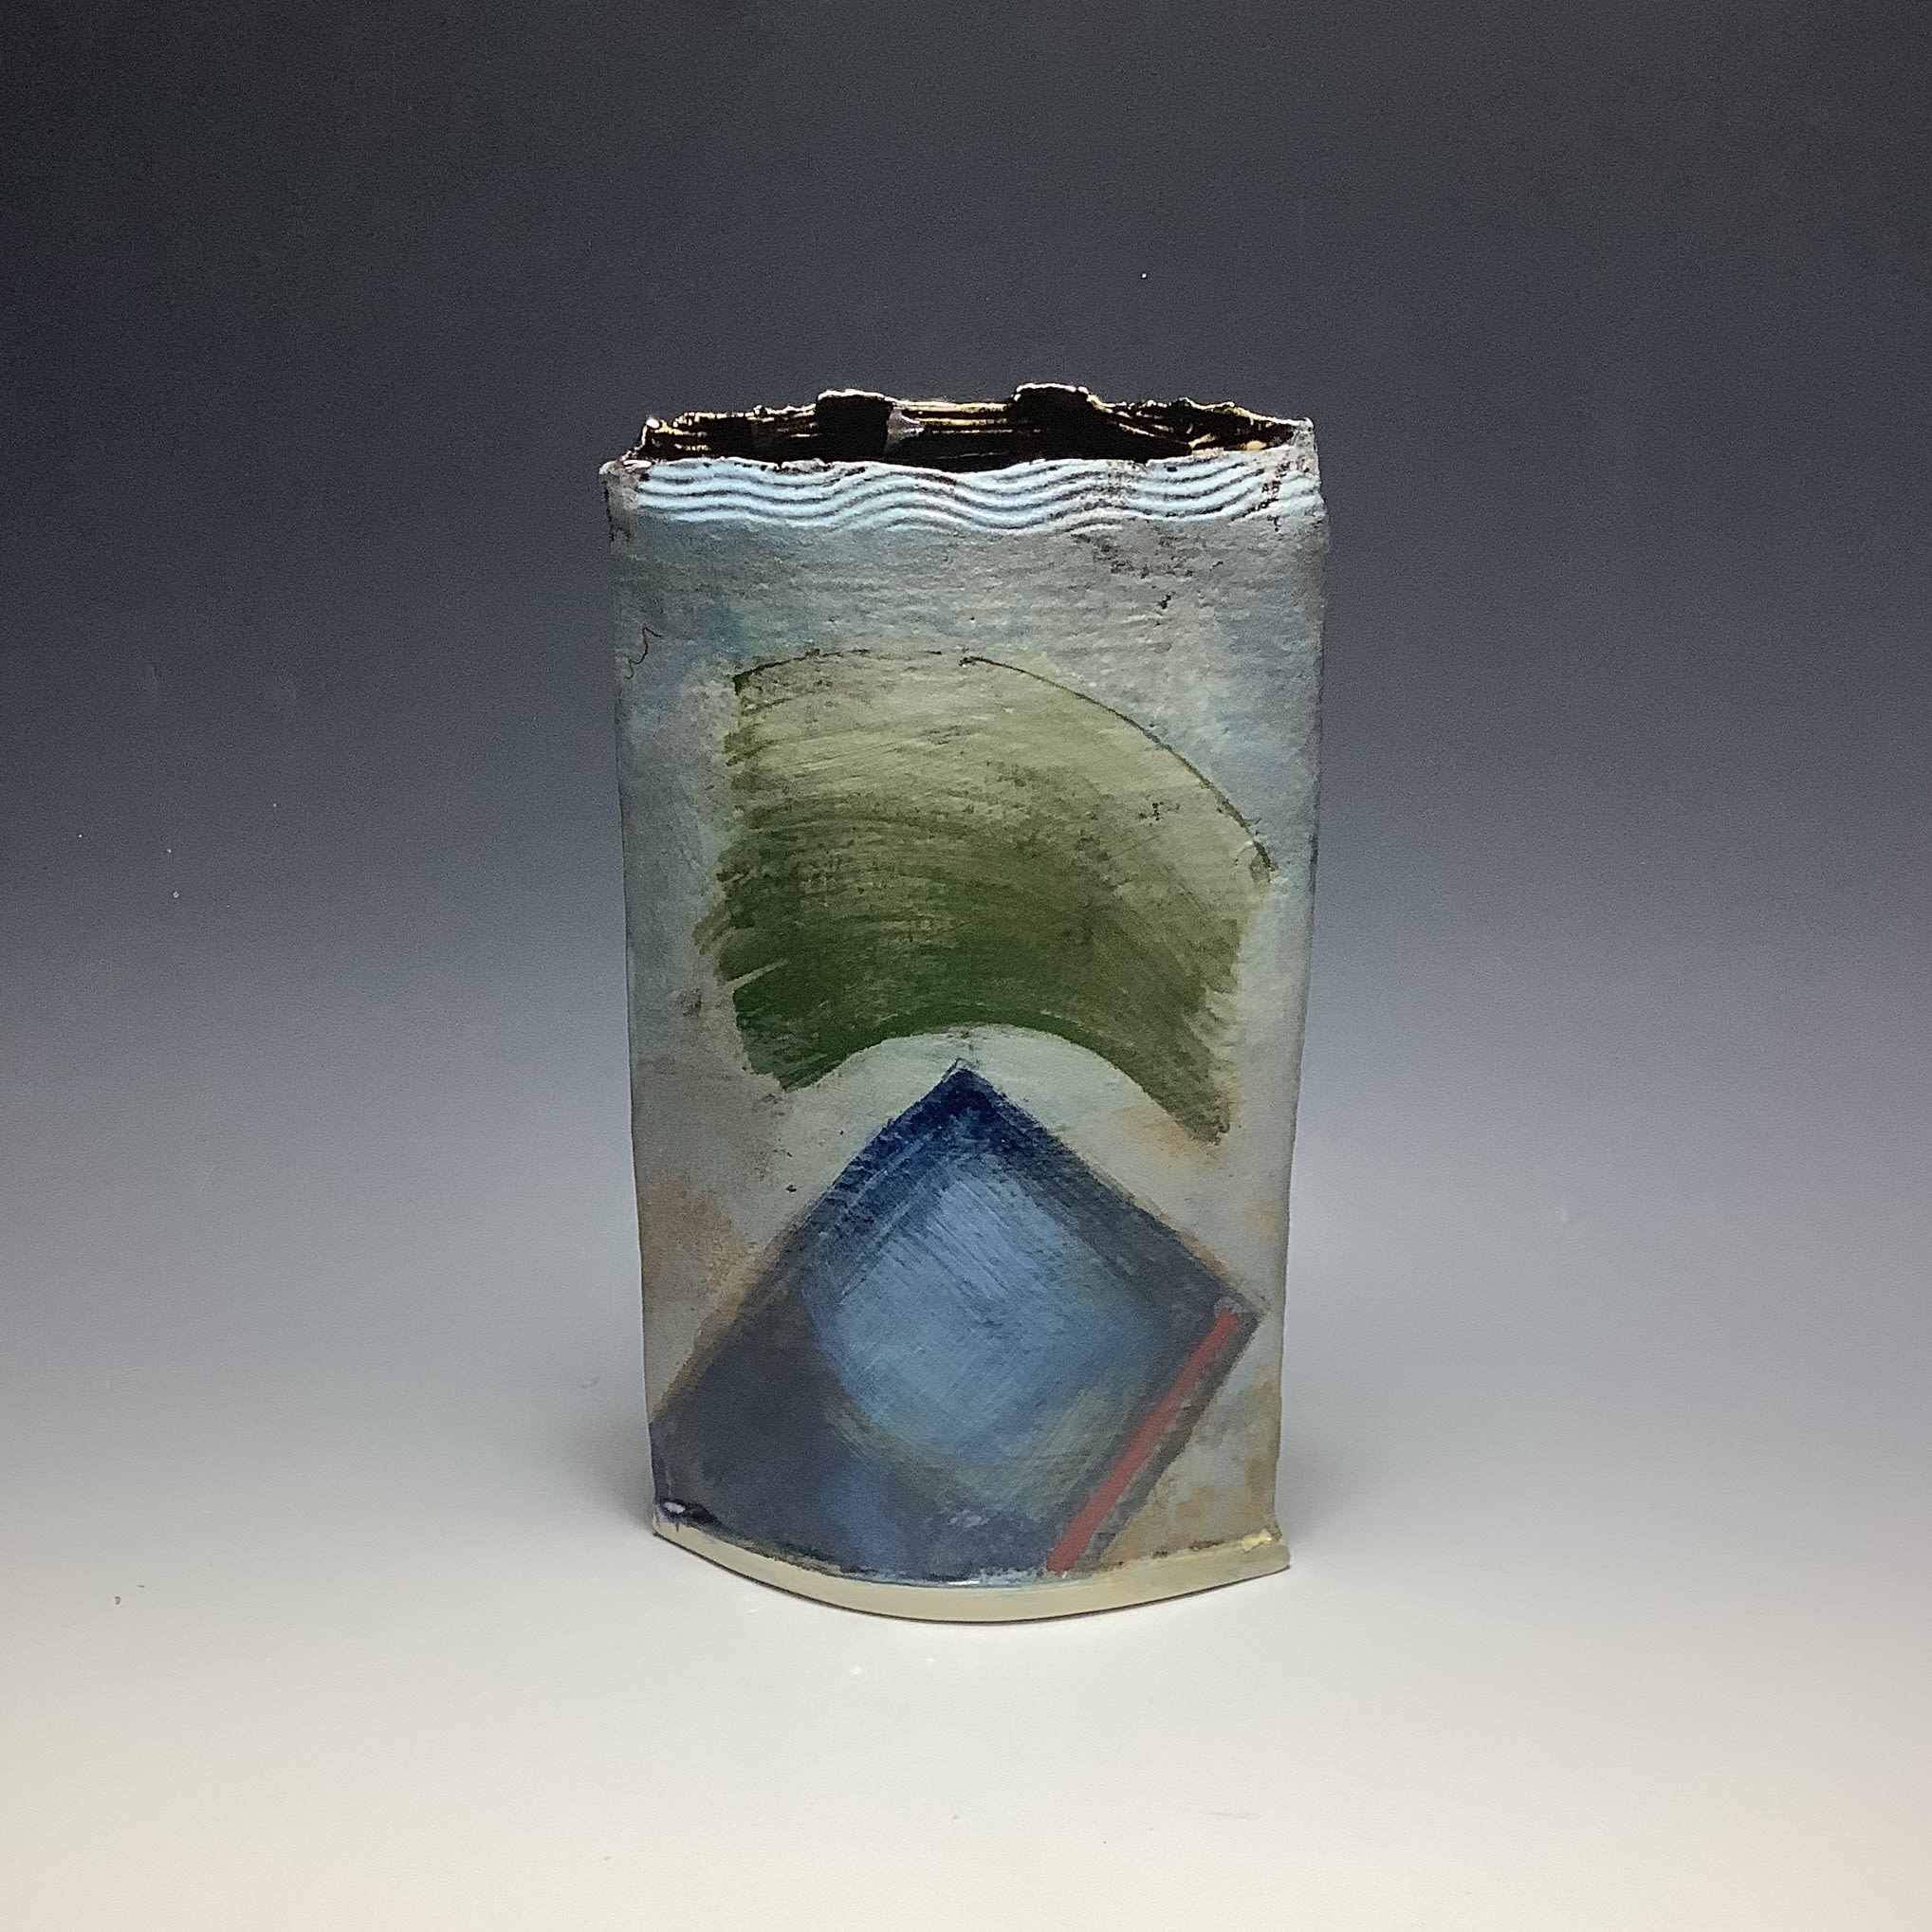 """<span class=""""link fancybox-details-link""""><a href=""""/artists/100-john-pollex/works/6827-john-pollex-large-slab-2020/"""">View Detail Page</a></span><div class=""""artist""""><strong>John Pollex</strong></div> b. 1941 <div class=""""title""""><em>Large Slab</em>, 2020</div> <div class=""""signed_and_dated"""">impressed with the artist's seal mark 'JP'</div> <div class=""""medium"""">white earthenware decorated with coloured slips</div> <div class=""""dimensions"""">10 x 7 in</div><div class=""""price"""">£330.00</div><div class=""""copyright_line"""">Ownart: £33 x 10 Months, 0% APR</div>"""